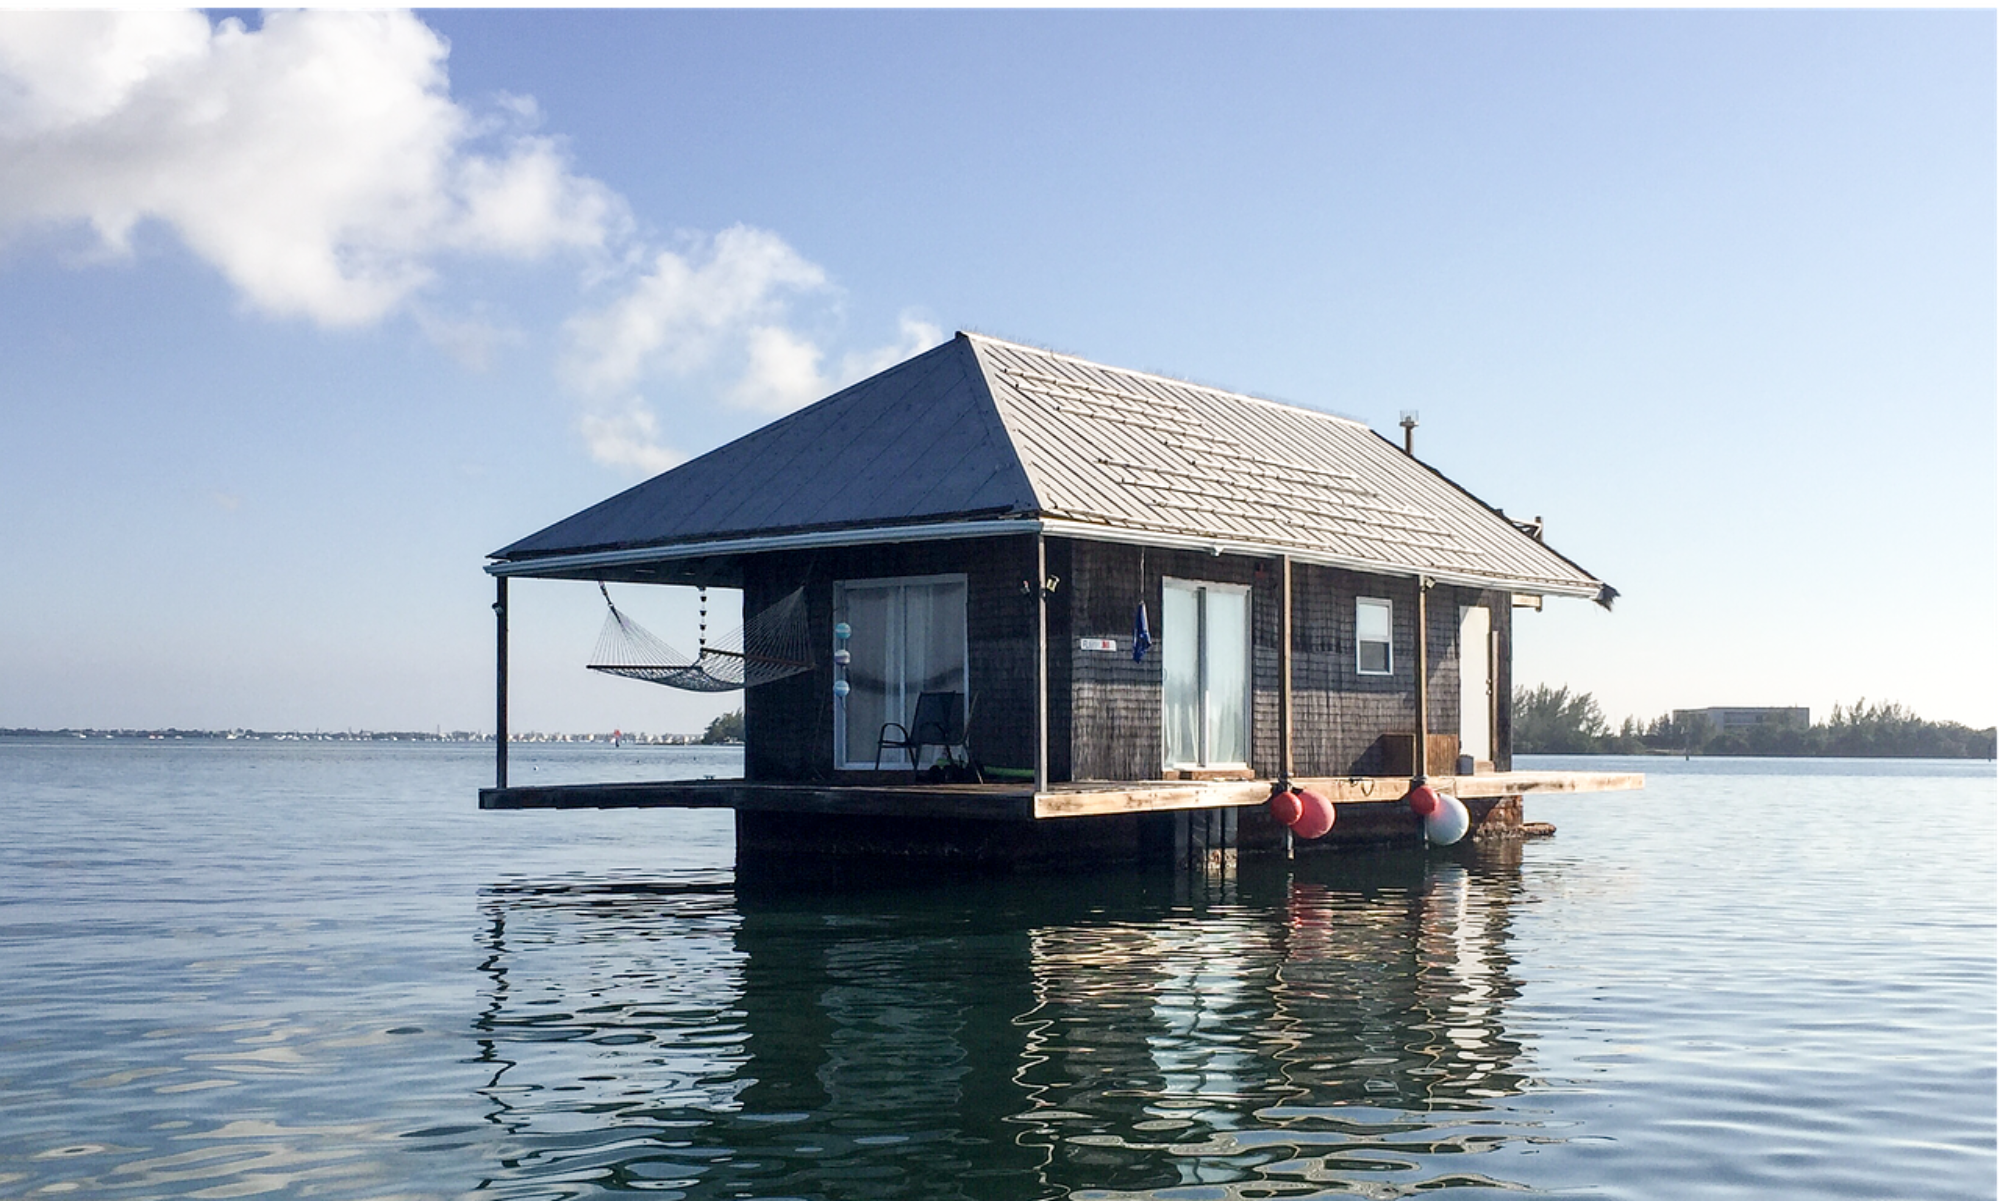 The Houseboat Centre